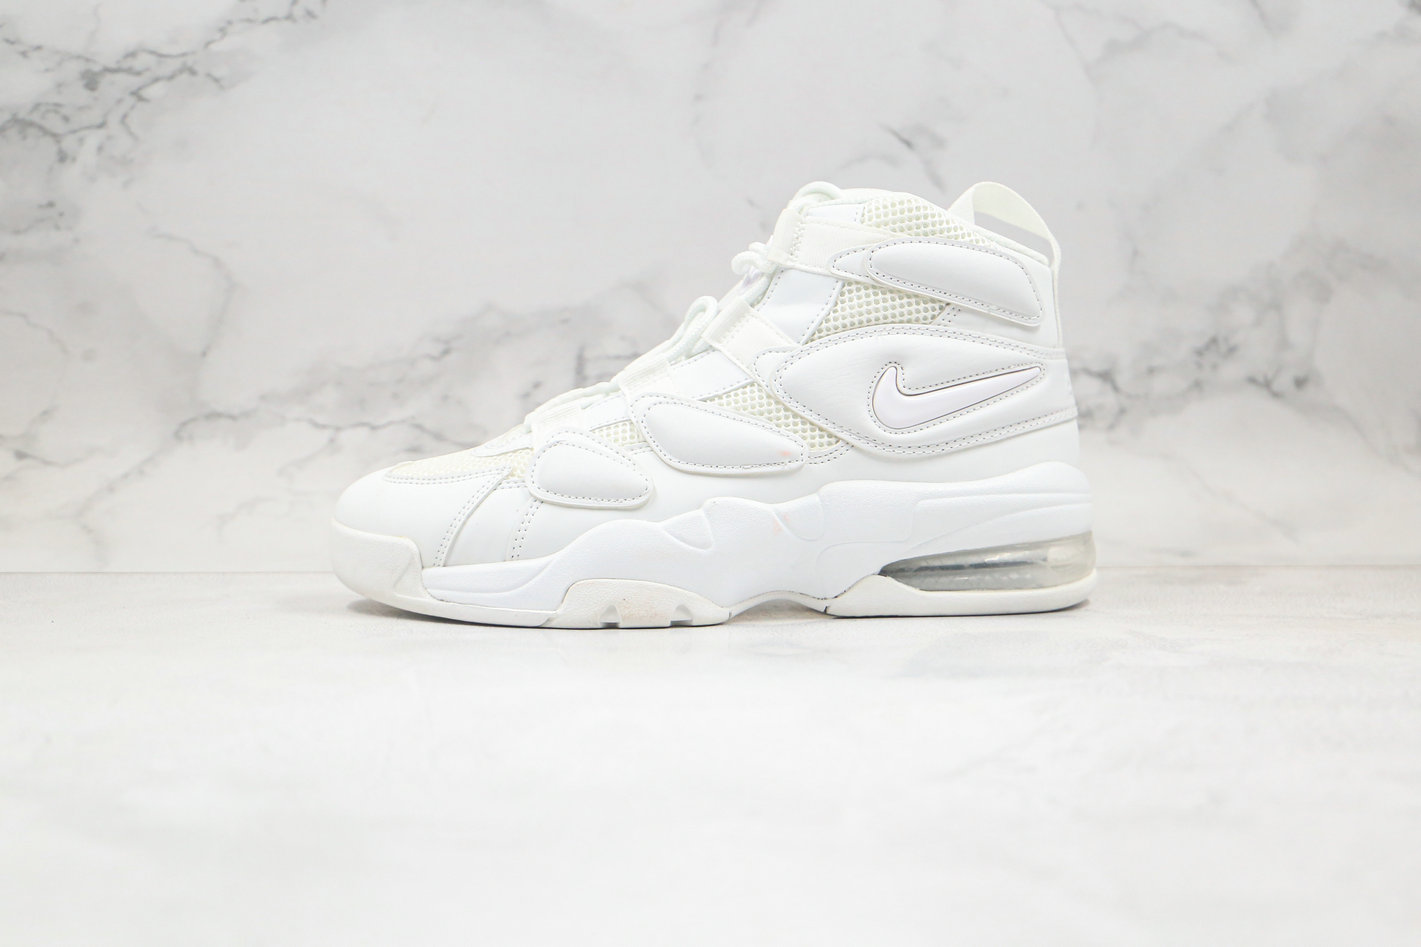 2020 Womens Cheapest Nike Air Max Uptempo 2 Triple White 922934-100 - www.wholesaleflyknit.com